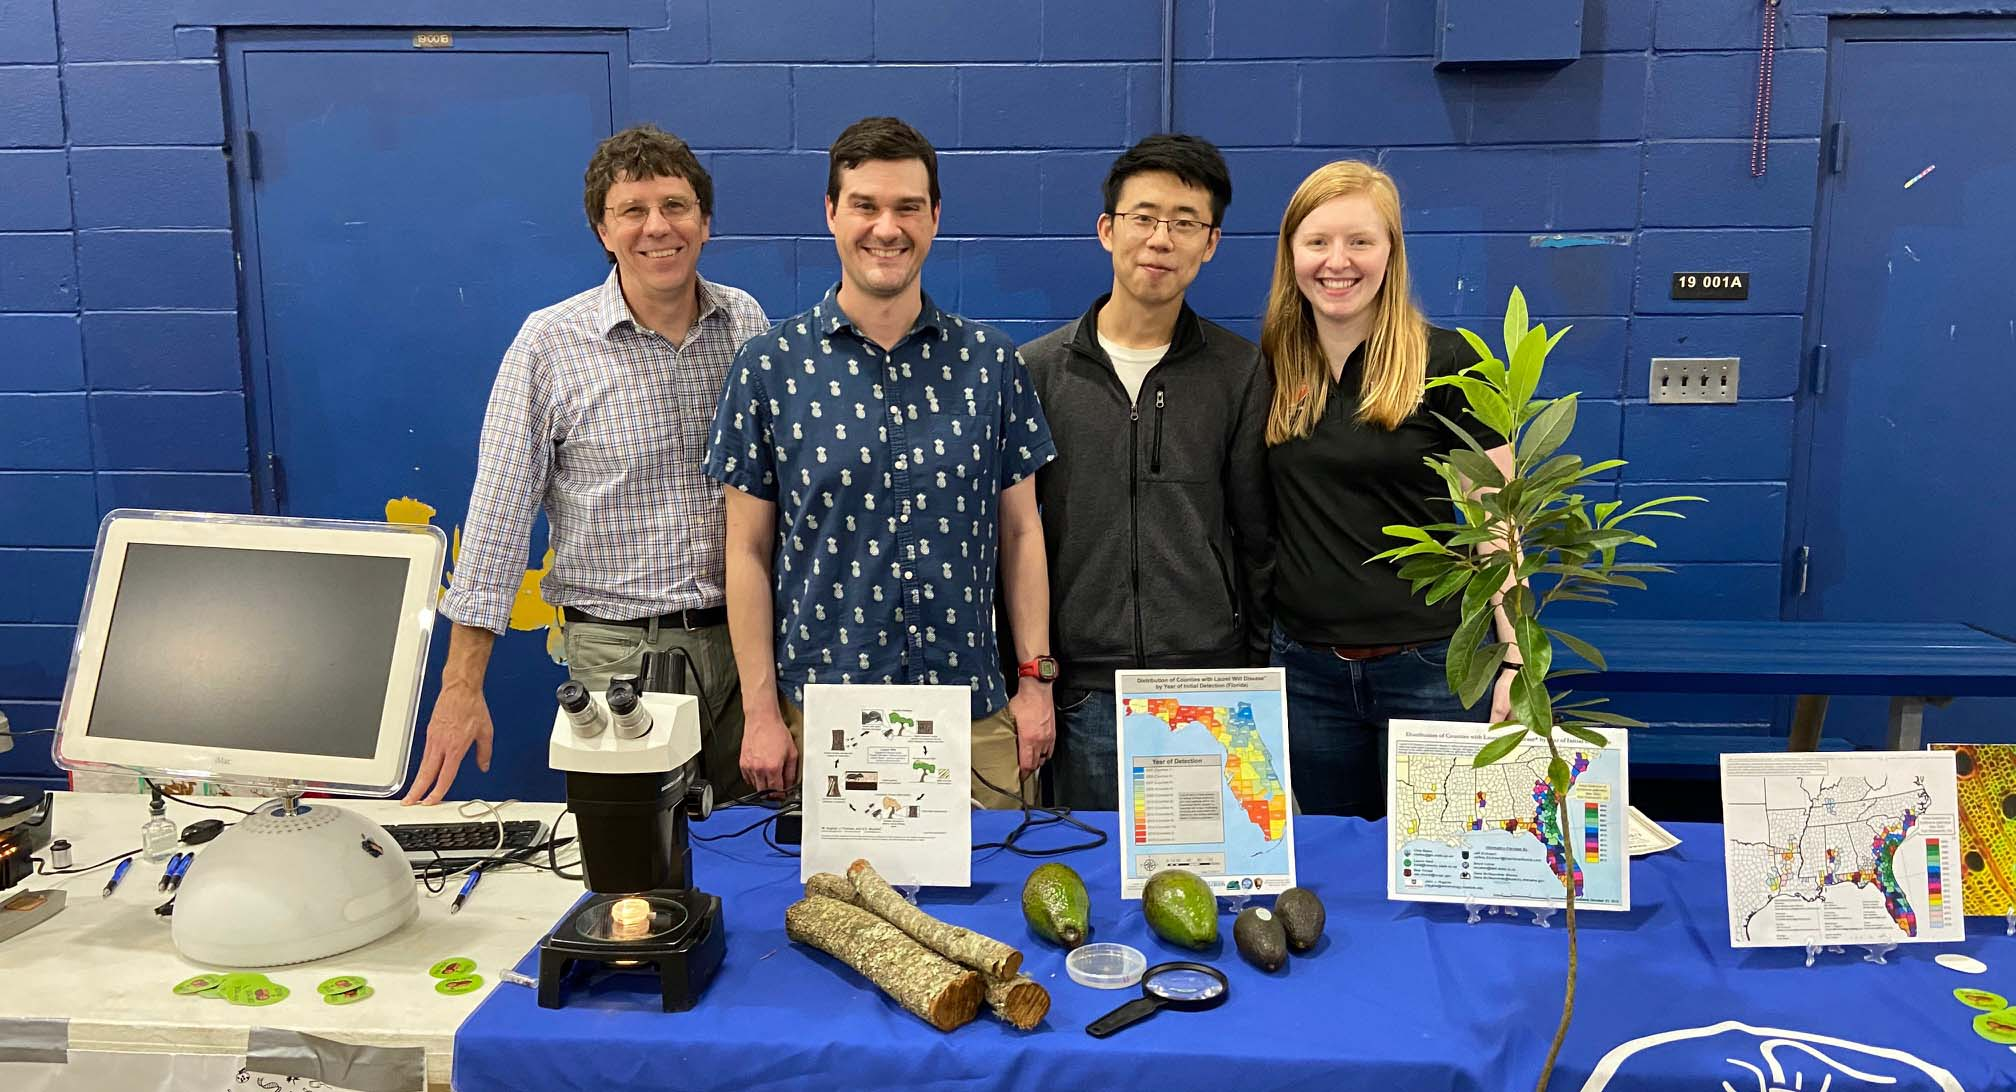 Dr. Jeffery Rollins, Josh Konkol, Qiang Wang, and Jeannie Klein at the outreach event